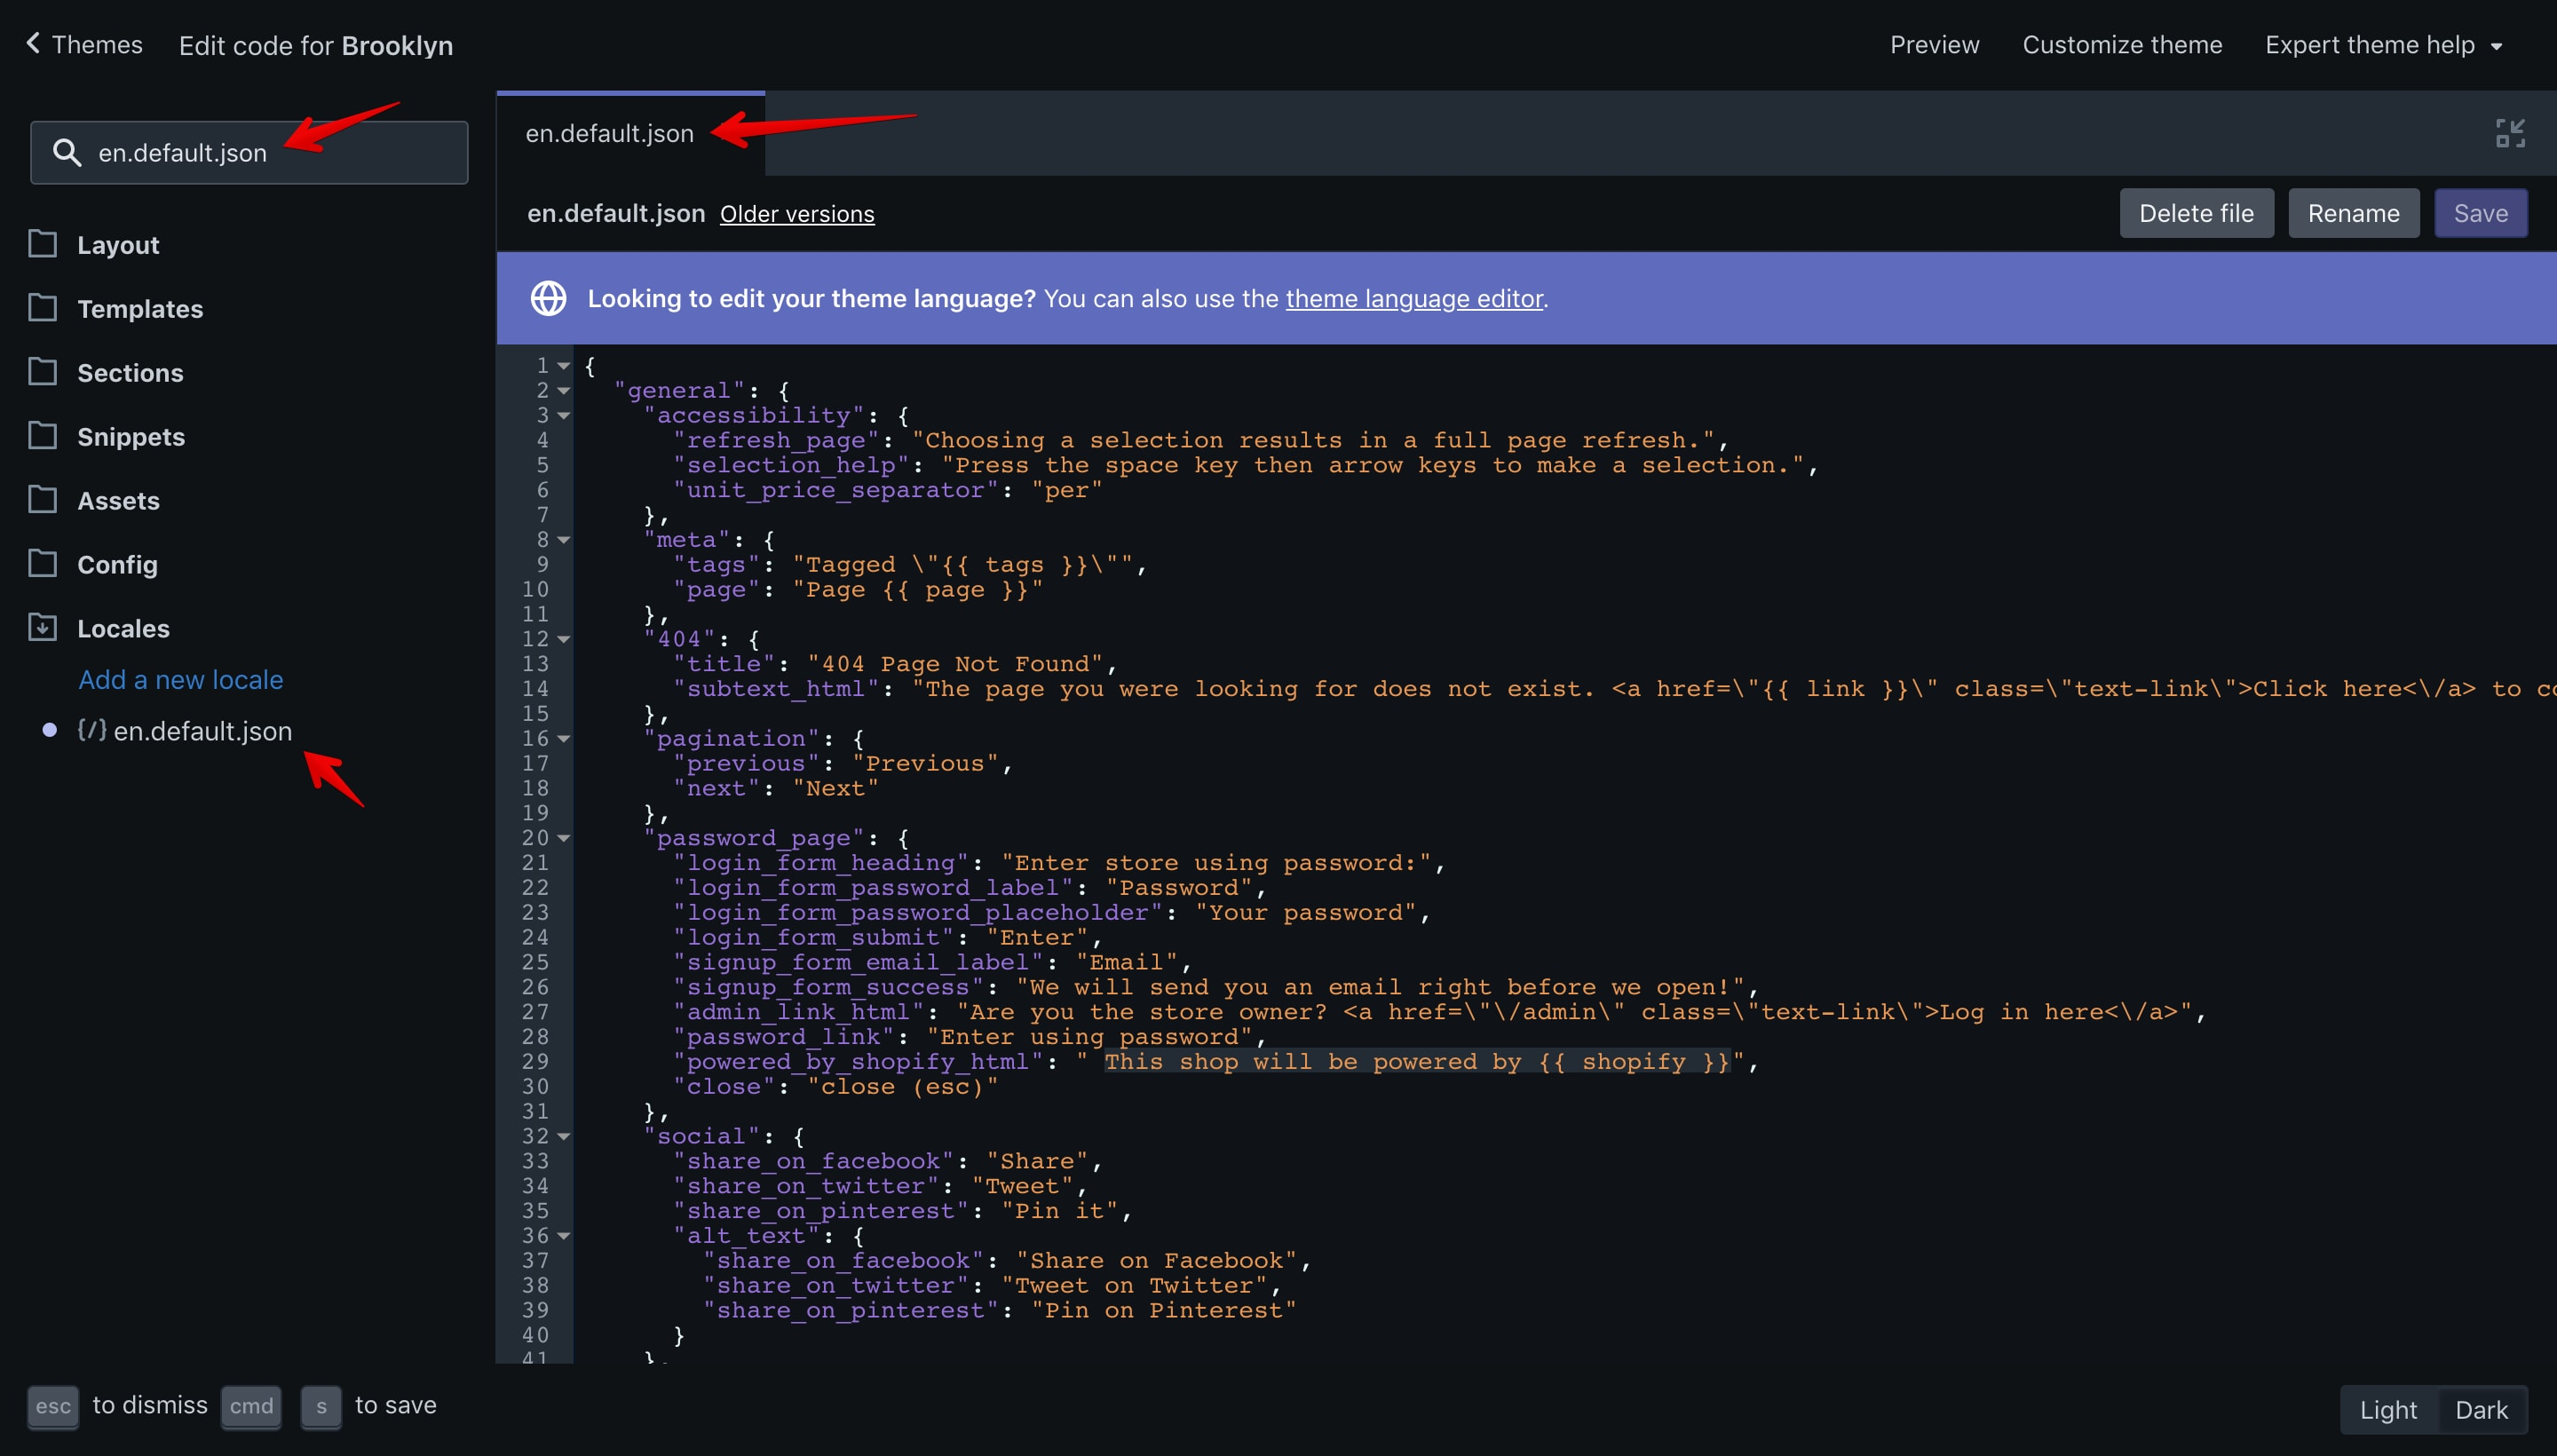 """Brooklyn theme """"en.default.json"""" file opened in the code editor."""